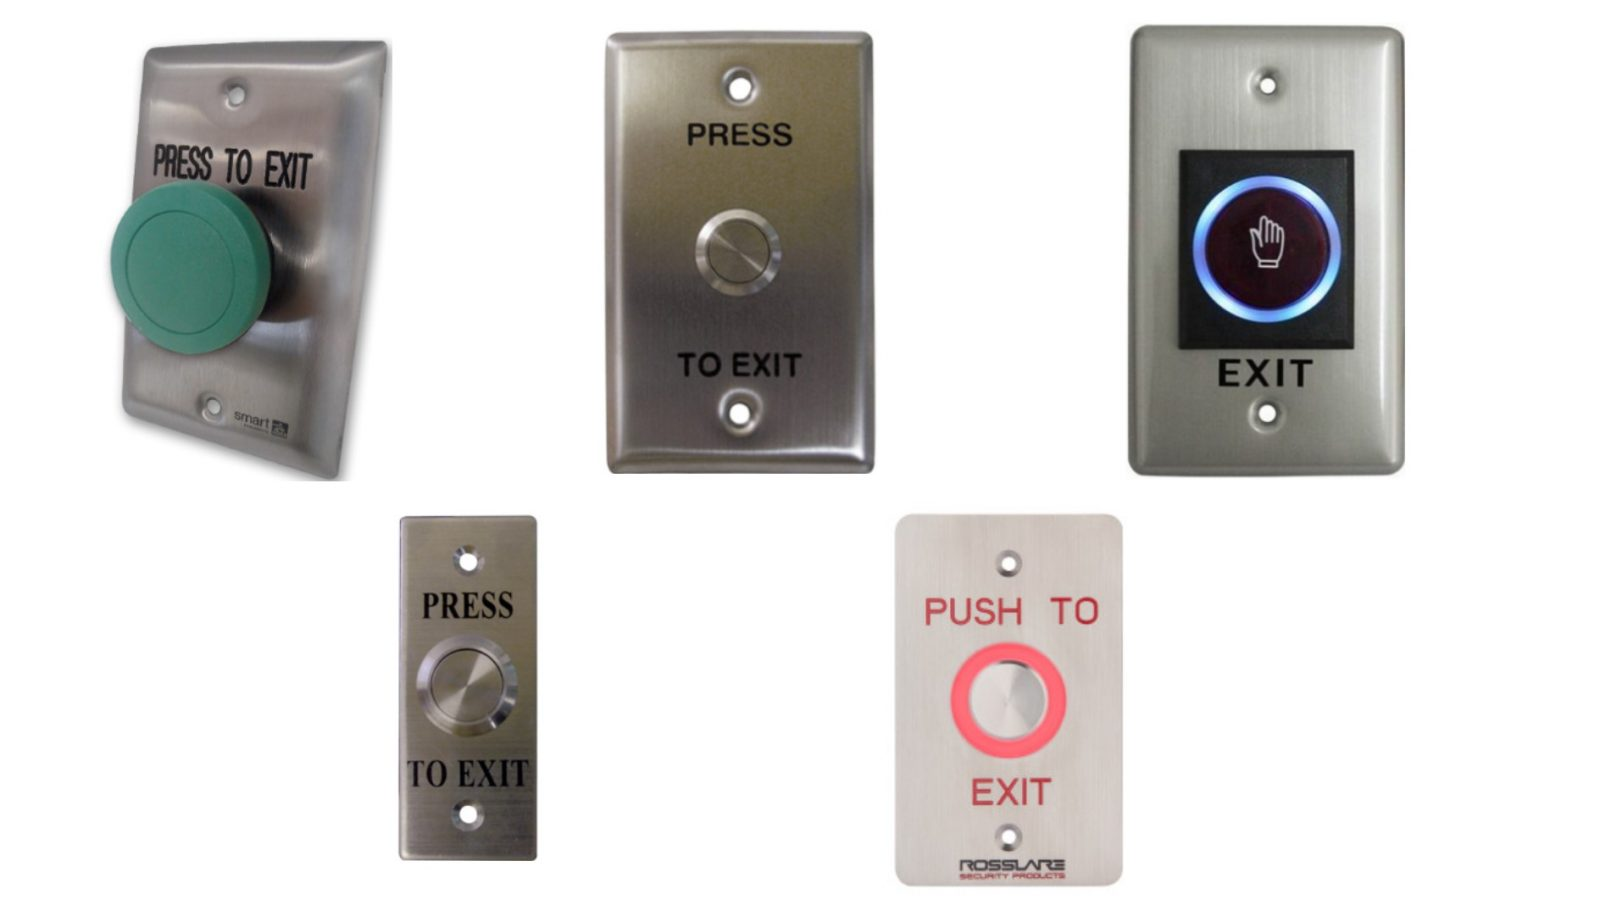 Push button access control is a fundamental component of a variety of access control systems. Likewise, no touch sensors can be extremely beneficial to a range of businesses, as well as commercial applications.